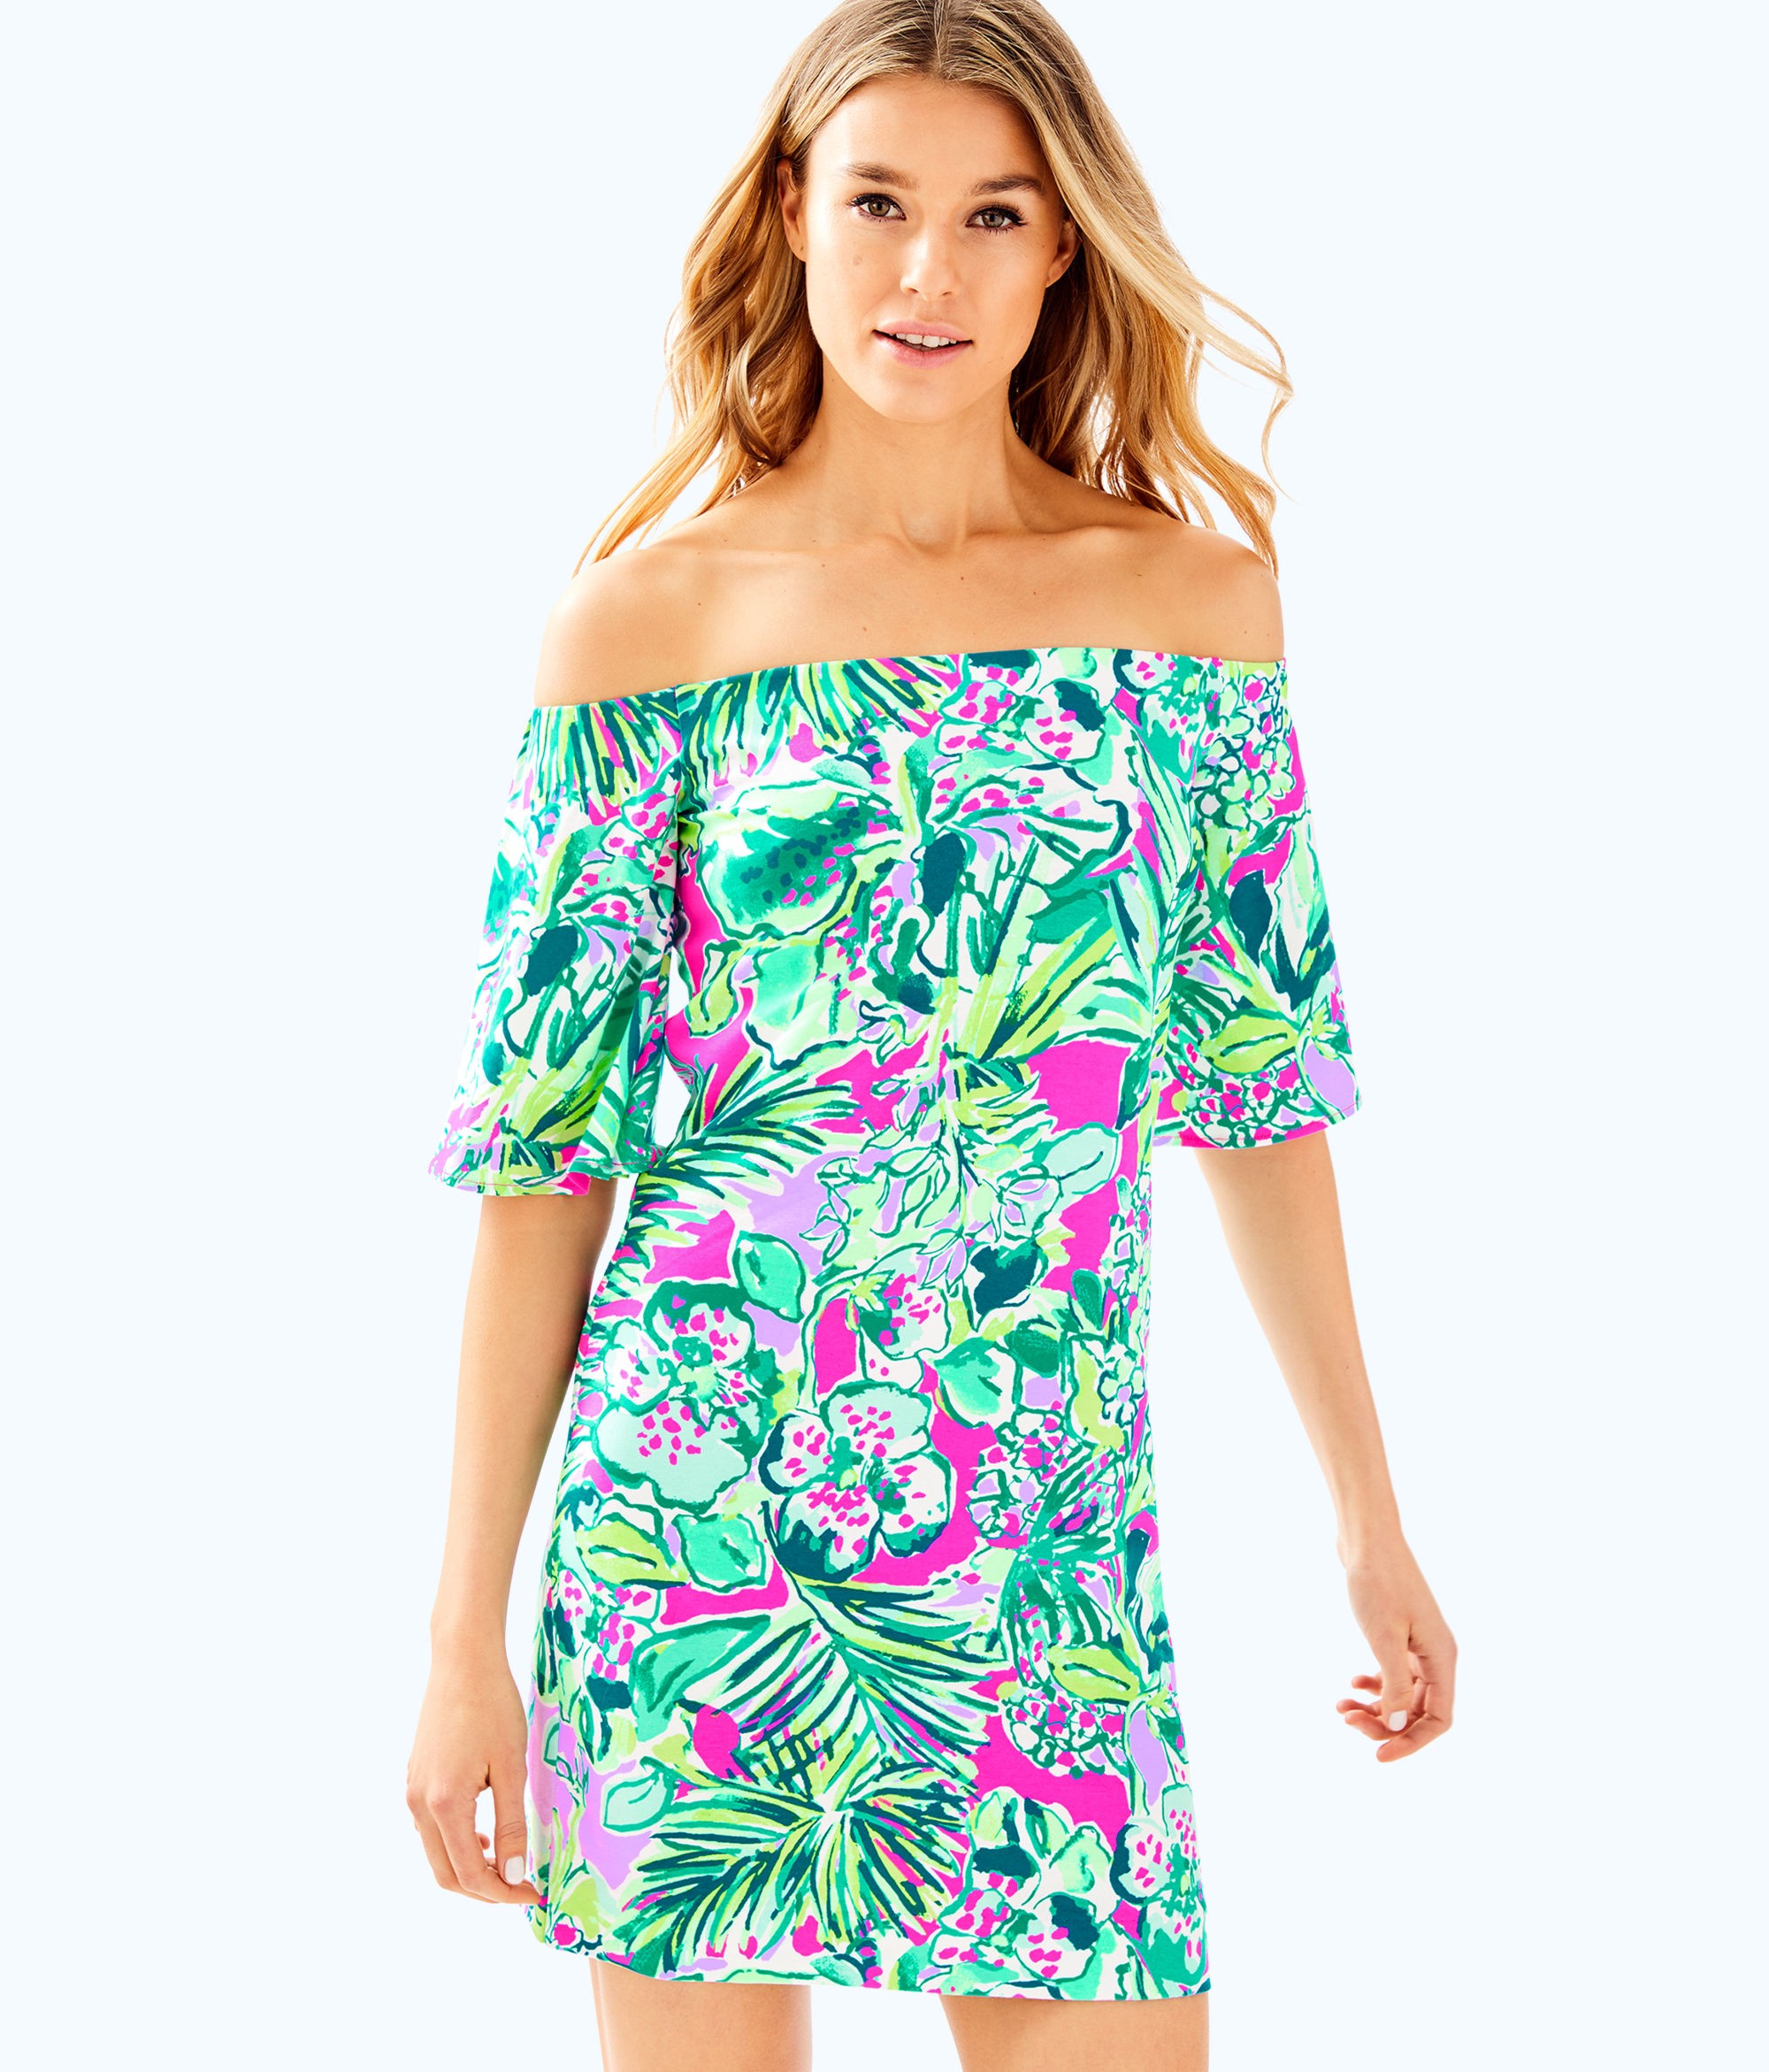 48bf594f2572ee Lilly Pulitzer Fawcett Off The Shoulder Dress - XXS | Products ...